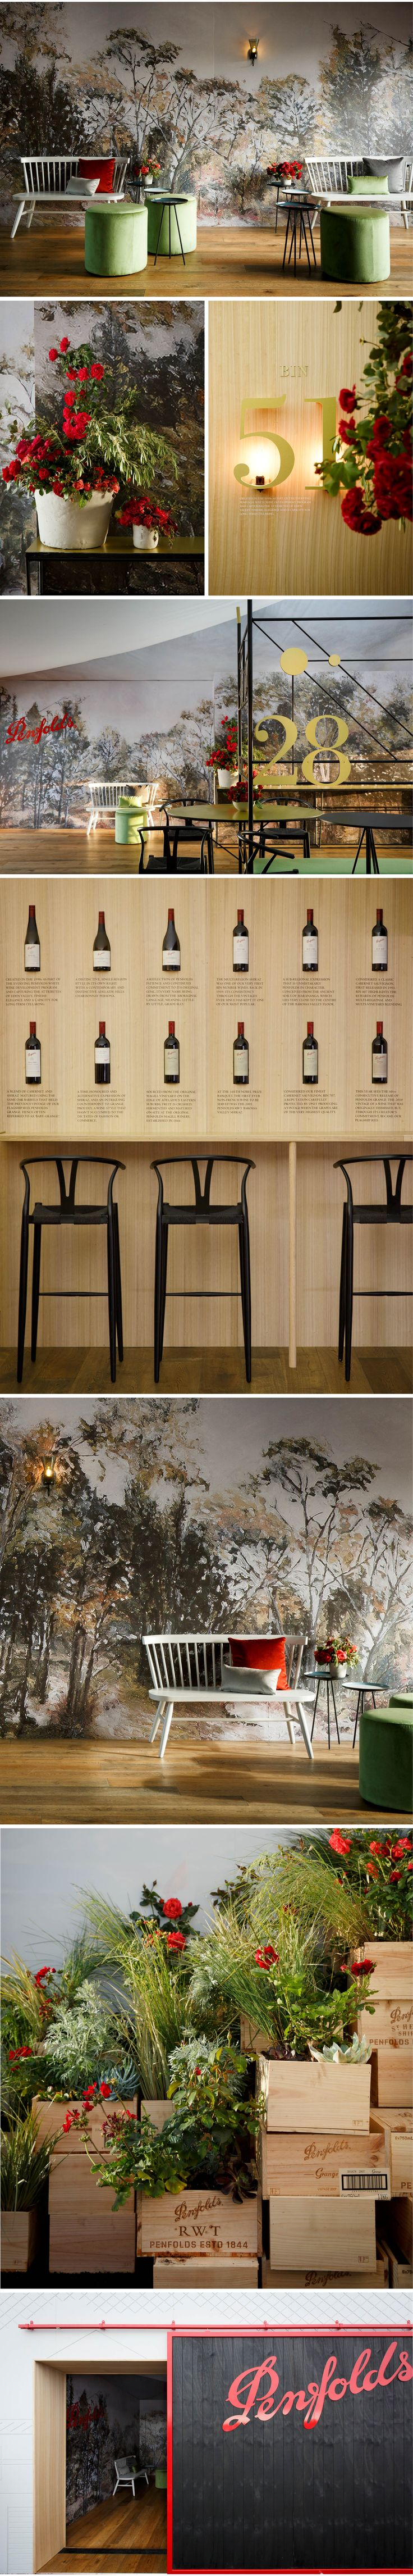 the 213 best images about plywood furniture on pinterest | drawer